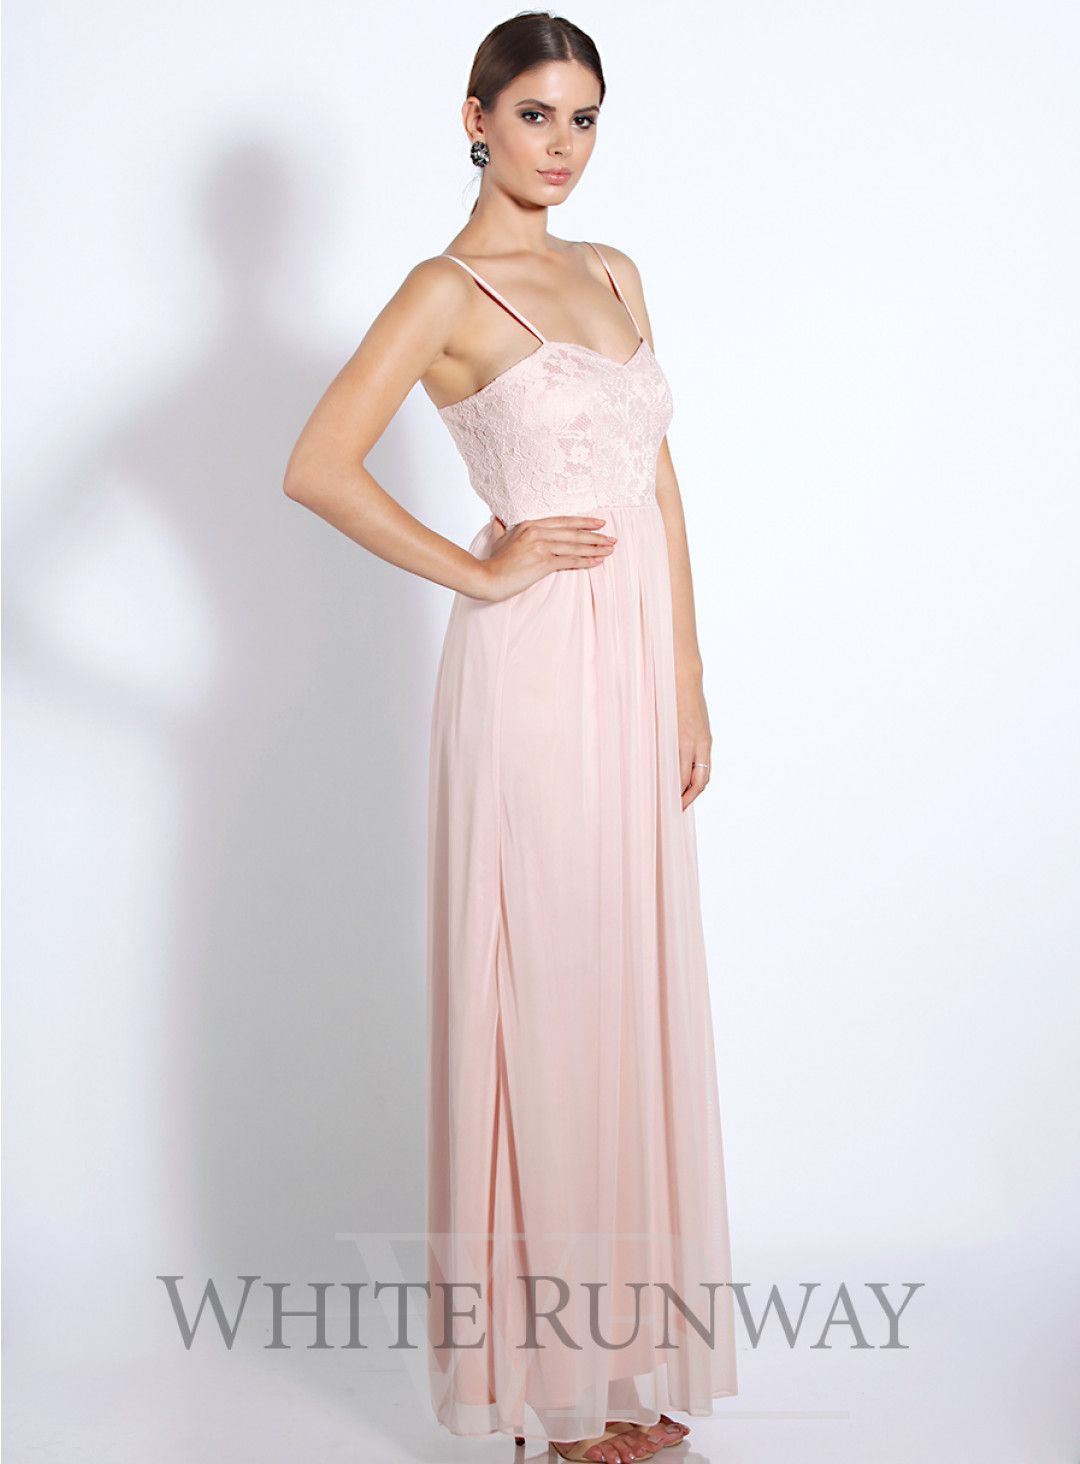 Blossom lace dress beautiful full length bridesmaid dress by